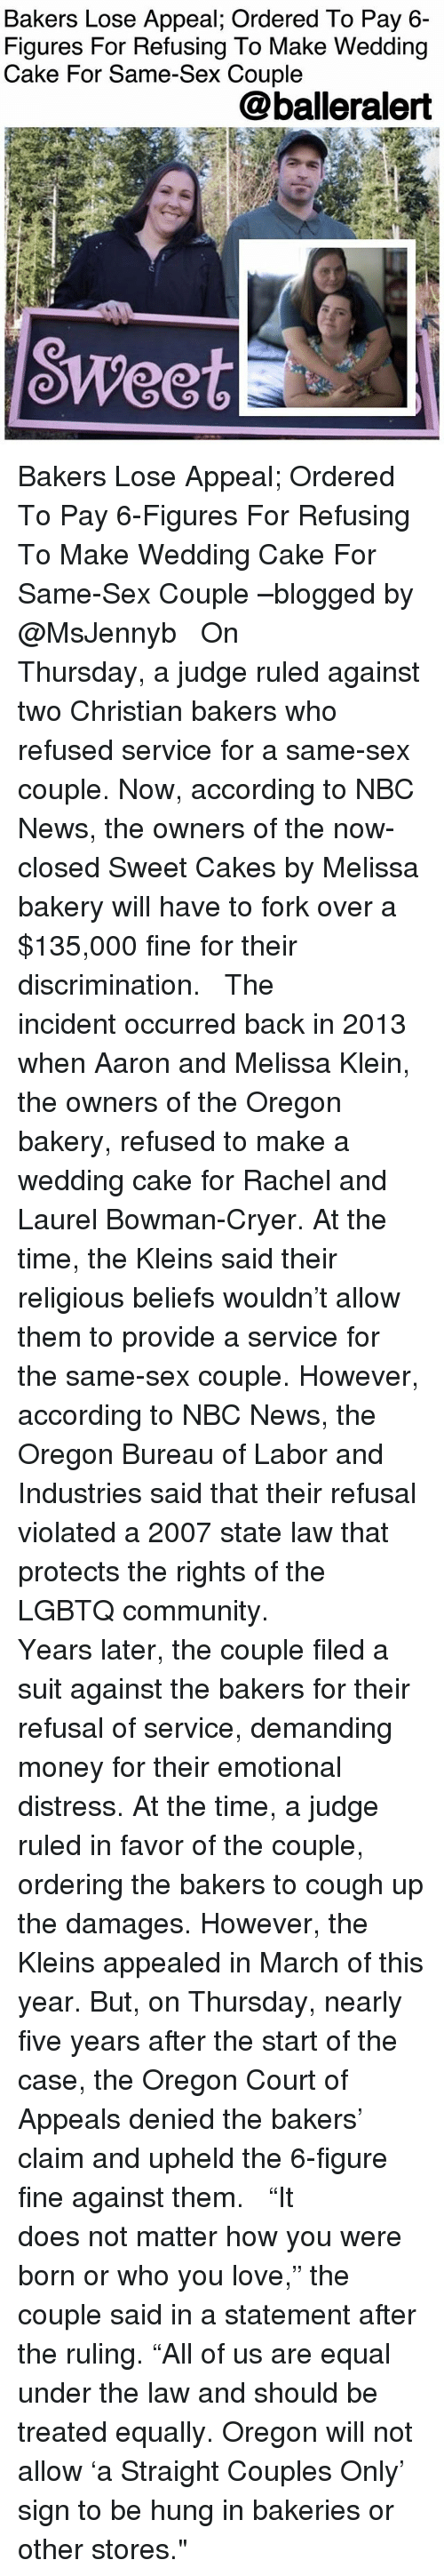 "Community, Love, and Memes: Bakers Lose Appeal; Ordered To Pay 6-  Figures For Refusing To Make Wedding  Cake For Same-Sex Couple  @balleralert  SWeet Bakers Lose Appeal; Ordered To Pay 6-Figures For Refusing To Make Wedding Cake For Same-Sex Couple –blogged by @MsJennyb ⠀⠀⠀⠀⠀⠀⠀ ⠀⠀⠀⠀⠀⠀⠀ On Thursday, a judge ruled against two Christian bakers who refused service for a same-sex couple. Now, according to NBC News, the owners of the now-closed Sweet Cakes by Melissa bakery will have to fork over a $135,000 fine for their discrimination. ⠀⠀⠀⠀⠀⠀⠀ ⠀⠀⠀⠀⠀⠀⠀ The incident occurred back in 2013 when Aaron and Melissa Klein, the owners of the Oregon bakery, refused to make a wedding cake for Rachel and Laurel Bowman-Cryer. At the time, the Kleins said their religious beliefs wouldn't allow them to provide a service for the same-sex couple. However, according to NBC News, the Oregon Bureau of Labor and Industries said that their refusal violated a 2007 state law that protects the rights of the LGBTQ community. ⠀⠀⠀⠀⠀⠀⠀ ⠀⠀⠀⠀⠀⠀⠀ Years later, the couple filed a suit against the bakers for their refusal of service, demanding money for their emotional distress. At the time, a judge ruled in favor of the couple, ordering the bakers to cough up the damages. However, the Kleins appealed in March of this year. But, on Thursday, nearly five years after the start of the case, the Oregon Court of Appeals denied the bakers' claim and upheld the 6-figure fine against them. ⠀⠀⠀⠀⠀⠀⠀ ⠀⠀⠀⠀⠀⠀⠀ ""It does not matter how you were born or who you love,"" the couple said in a statement after the ruling. ""All of us are equal under the law and should be treated equally. Oregon will not allow 'a Straight Couples Only' sign to be hung in bakeries or other stores."""